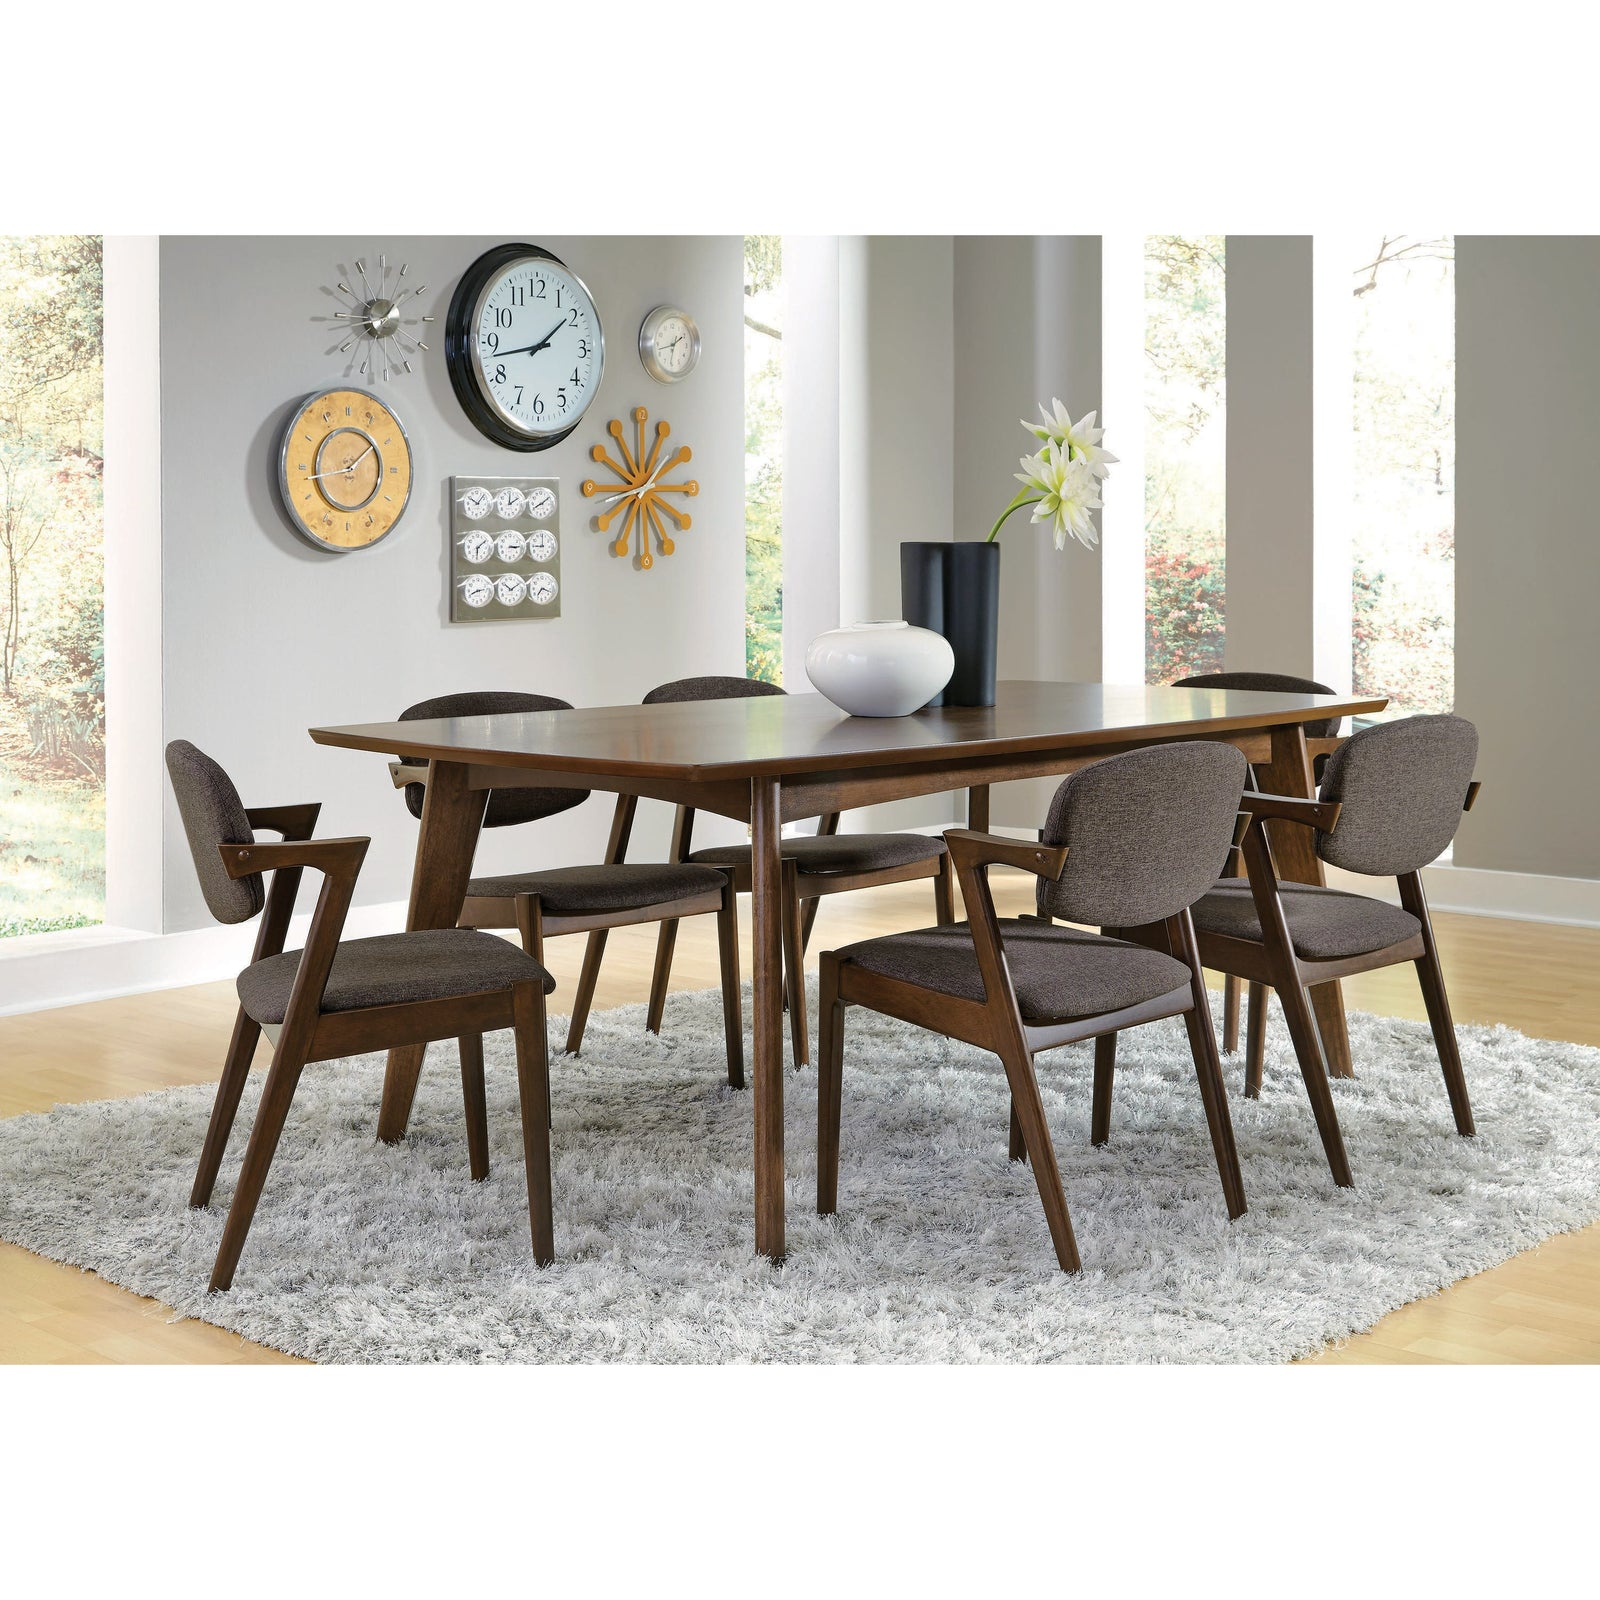 Coaster 105352 | Mid-Century Dark Walnut Dining Side Chairs With Grey Cushion Set Of 2